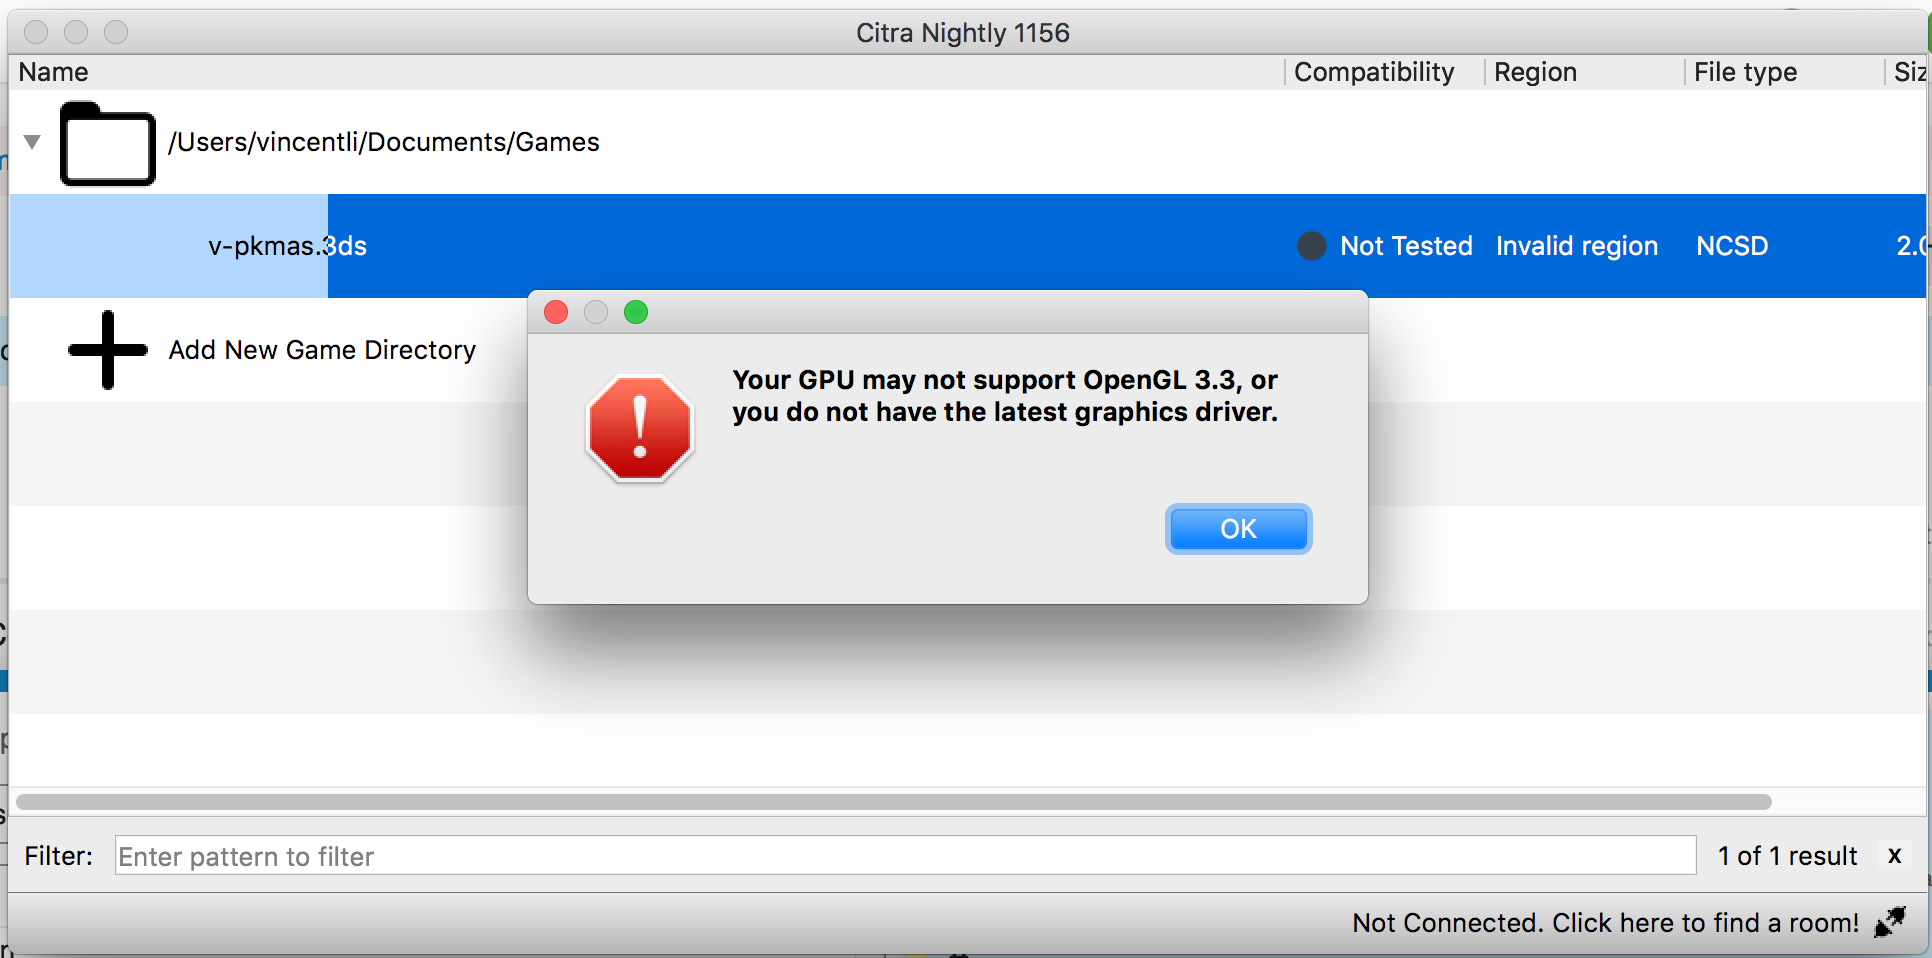 Your GPU may not support OpenGL 3 3, or you do not have the latest